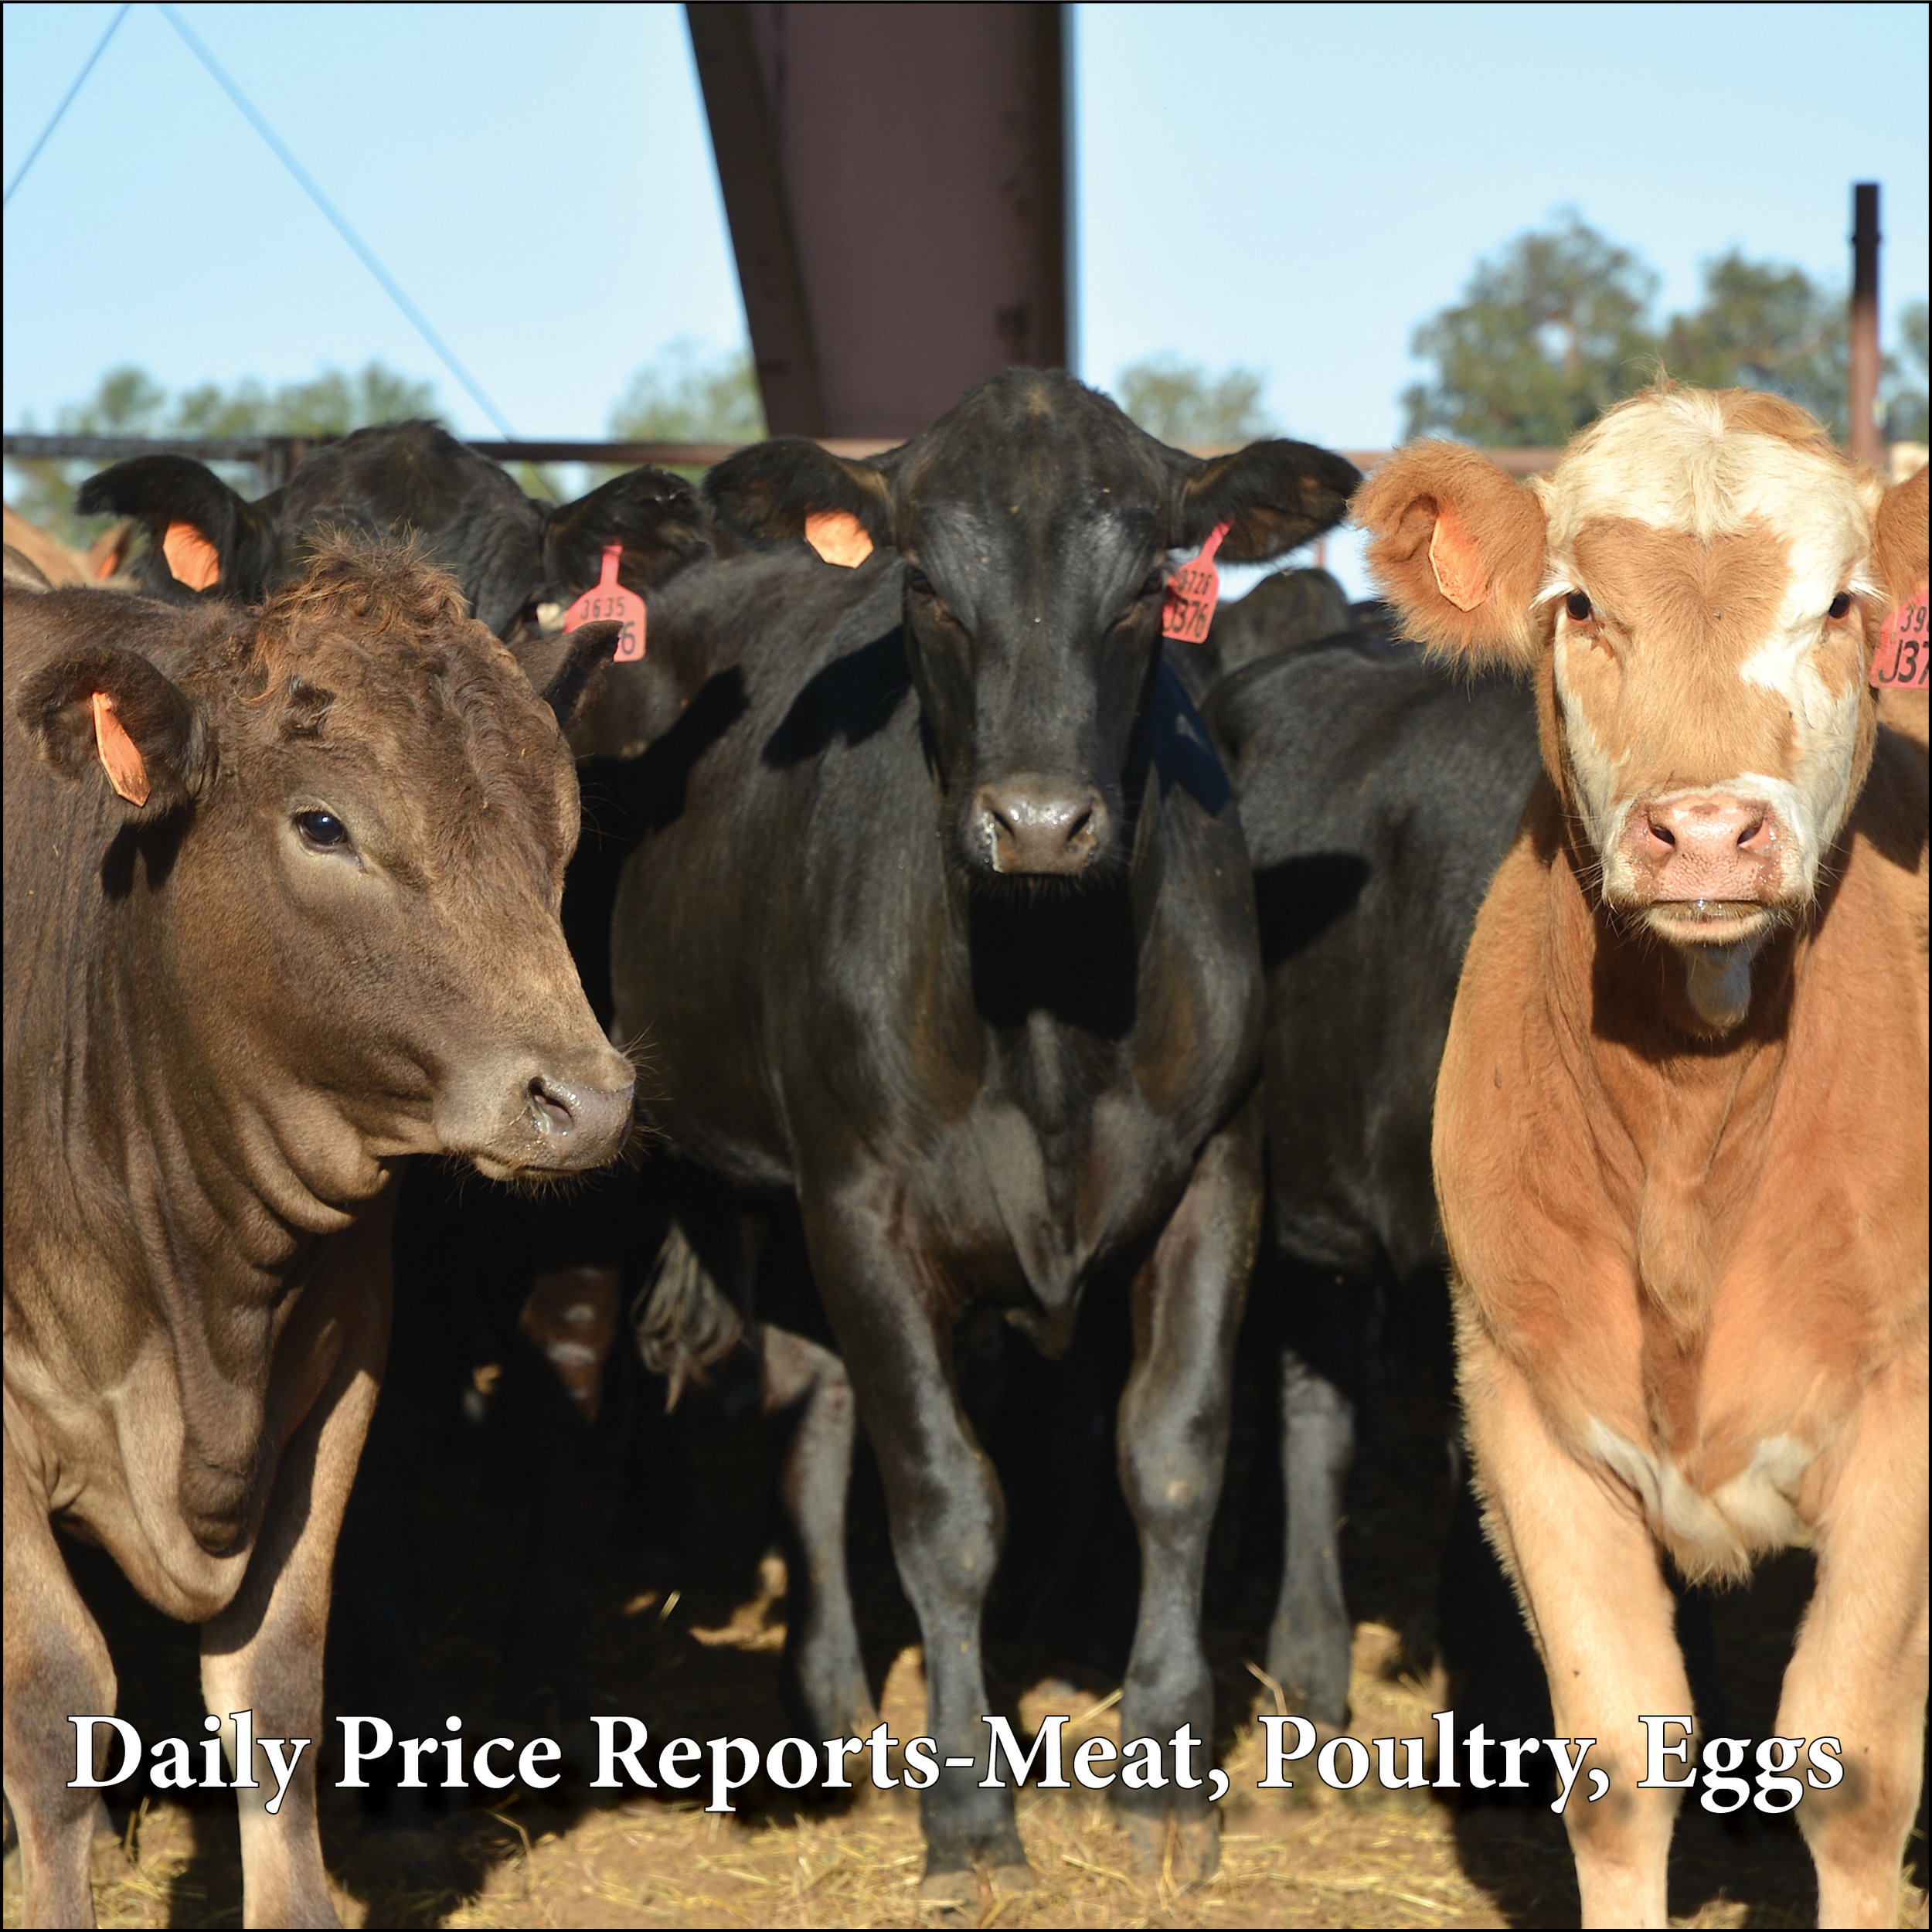 Daily Price Reports – Meat, Poultry, Eggs    USDA BOXED BEEF    USDA BEEF TRIMMINGS    USDA PORK    CME FUTURES – LIVESTOCK    USDA NORTHEAST BROILER PARTS    USDA REGIONAL EGG MARKETS